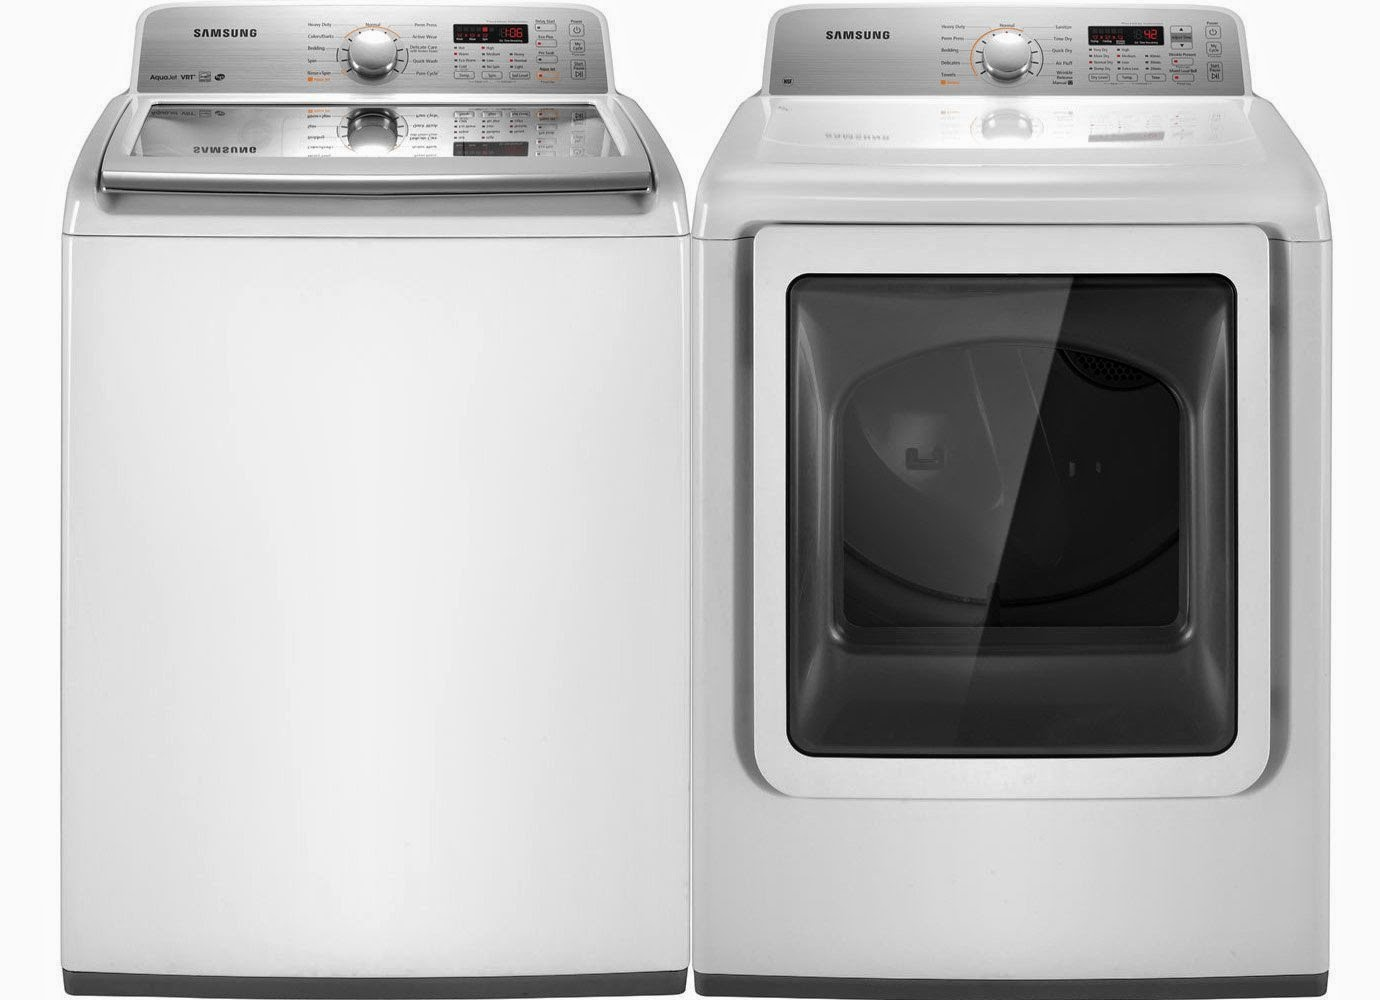 Used Washer And Dryer Stackable samsung washer and dryer: samsung washer and dryer reviews